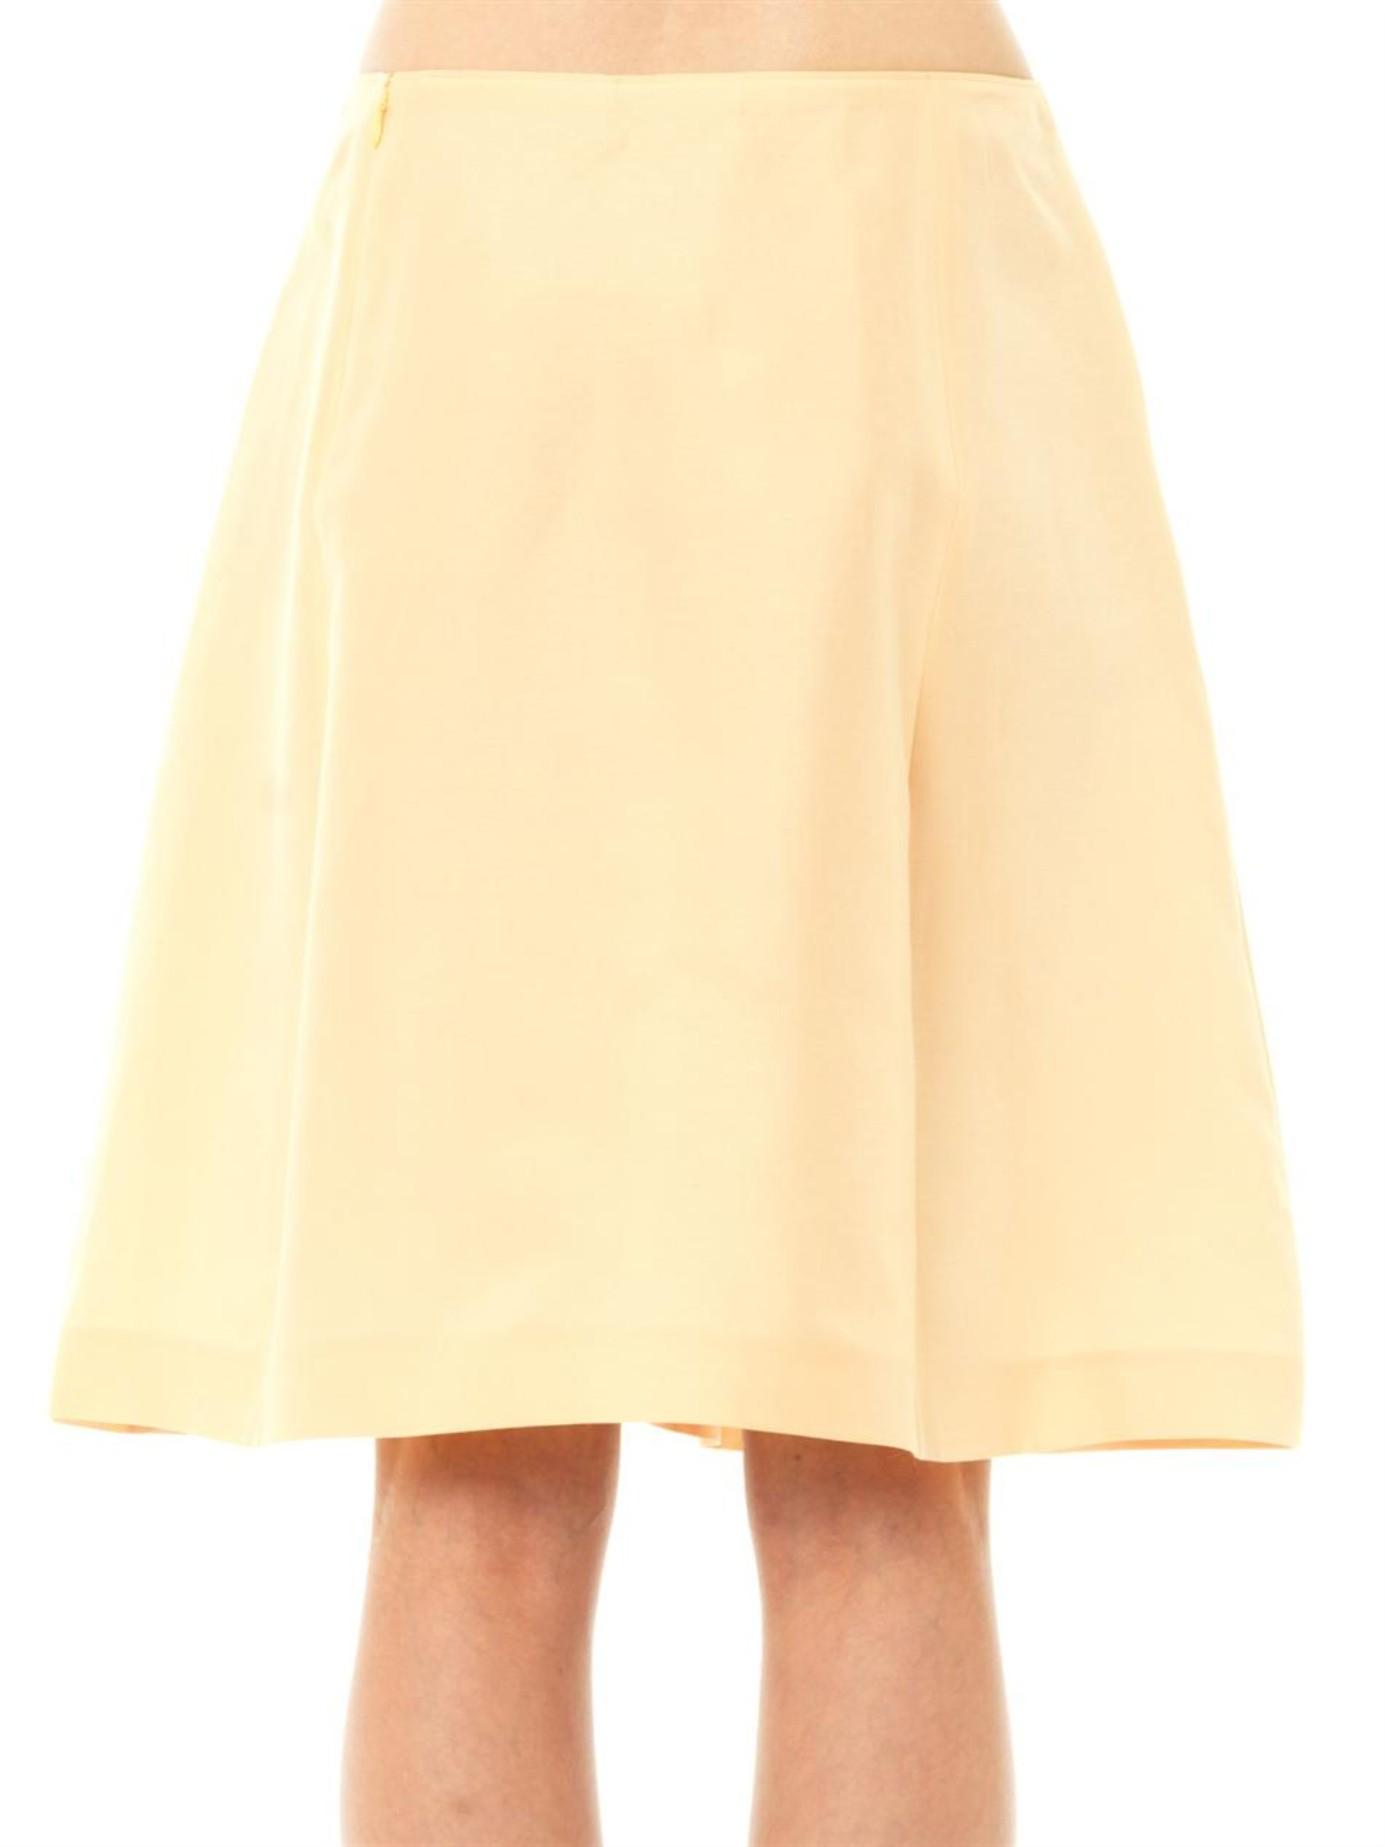 Jil sander navy Cotton A-line Skirt in Yellow | Lyst